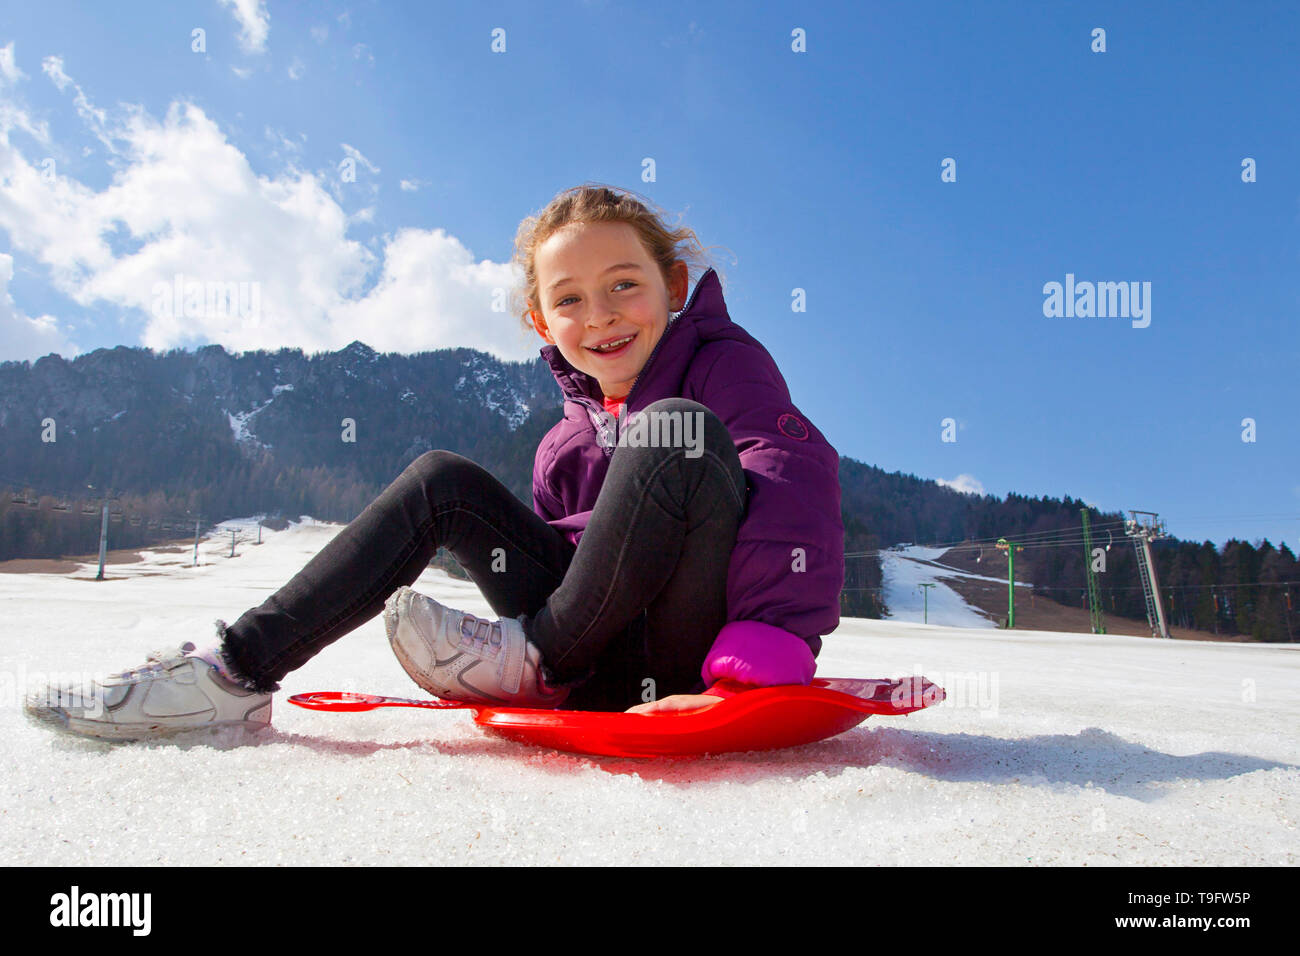 Smiling girl having fun on a bum board - Stock Image